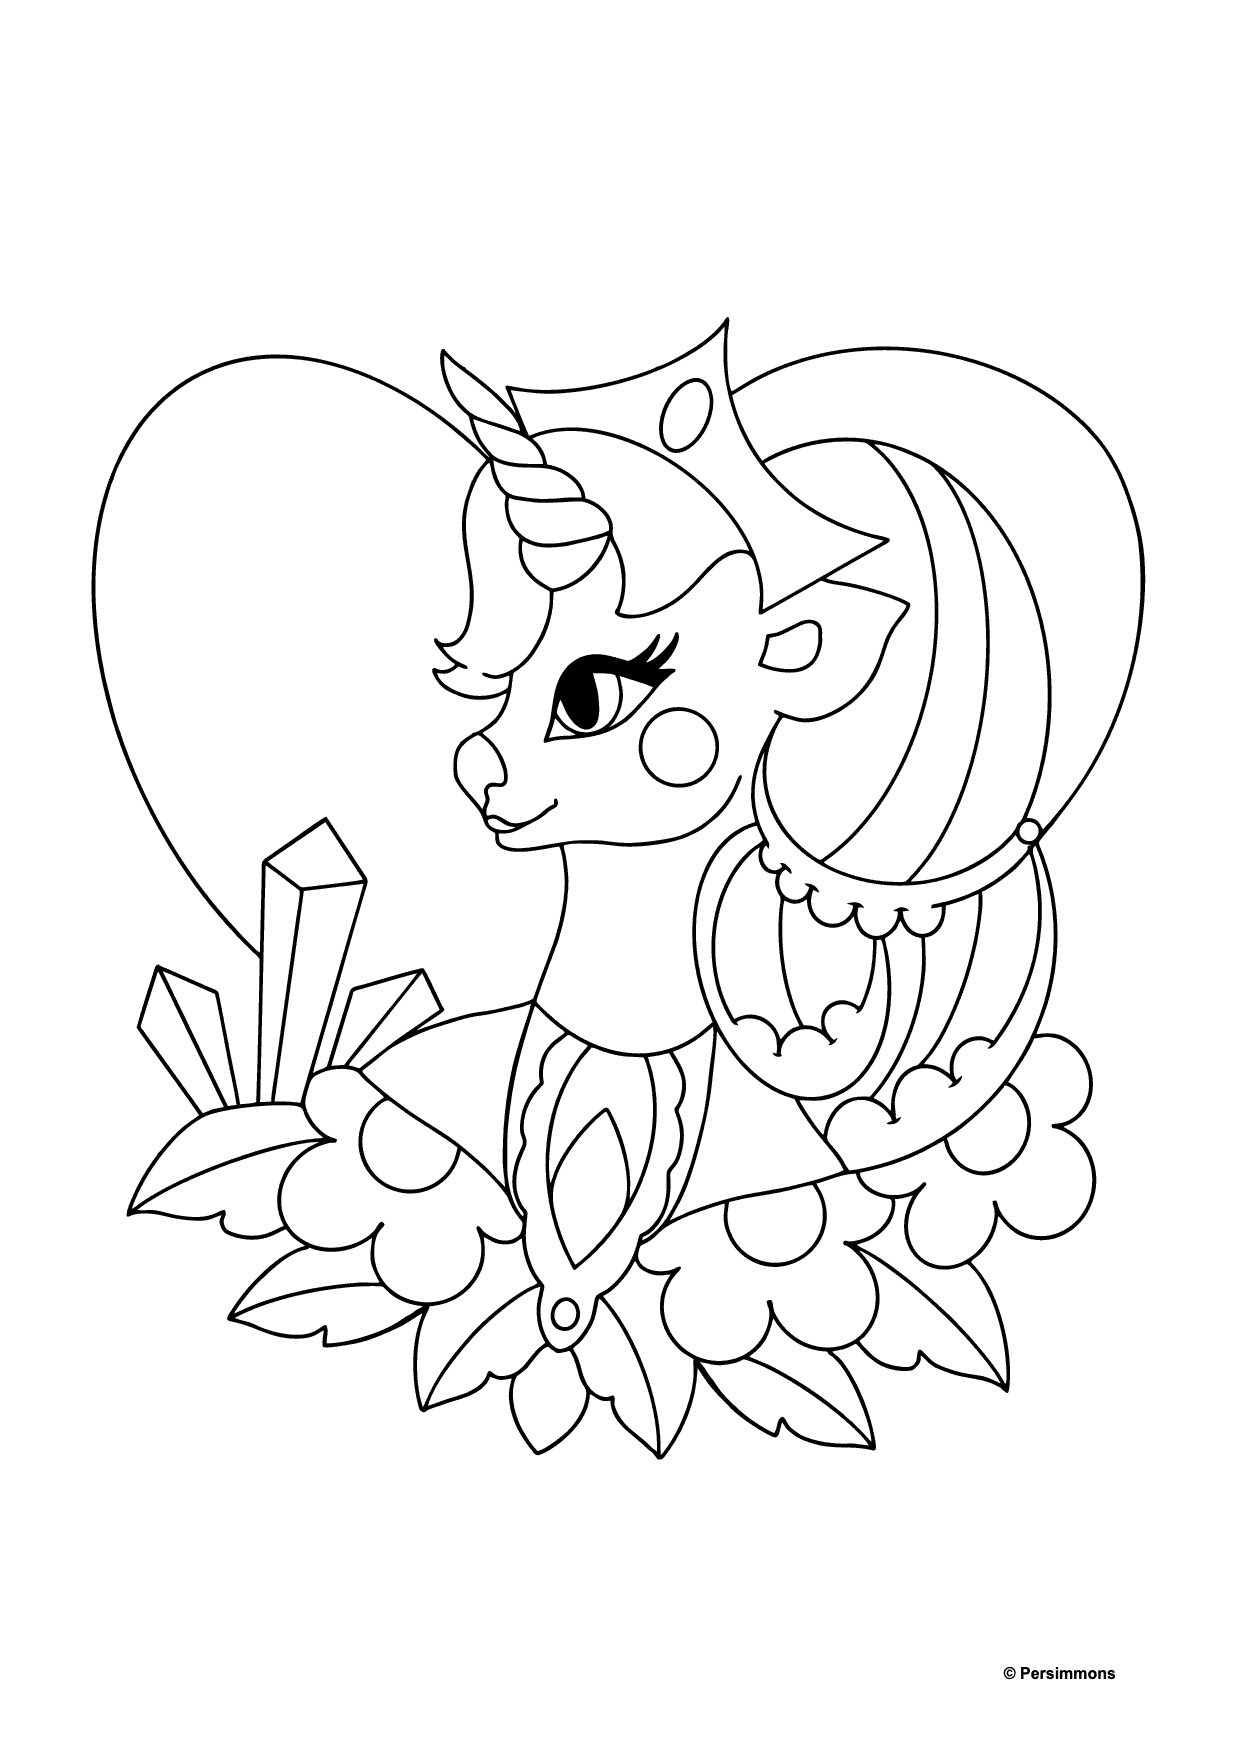 Simple Coloring Page - A Unicorn Queen for Kids